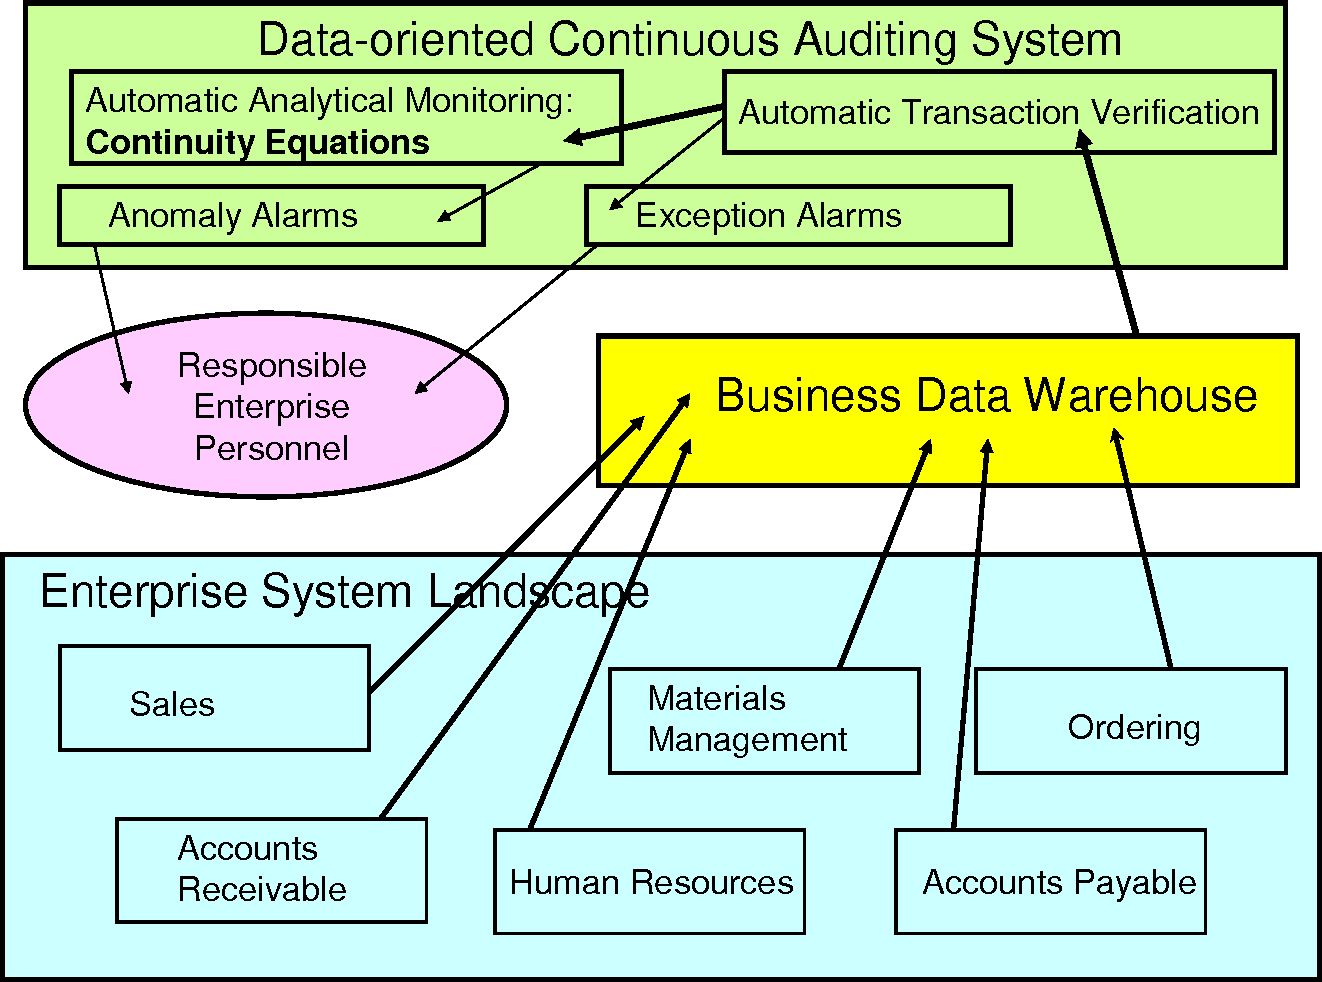 hight resolution of figure 1 architecture of data oriented continuous auditing system